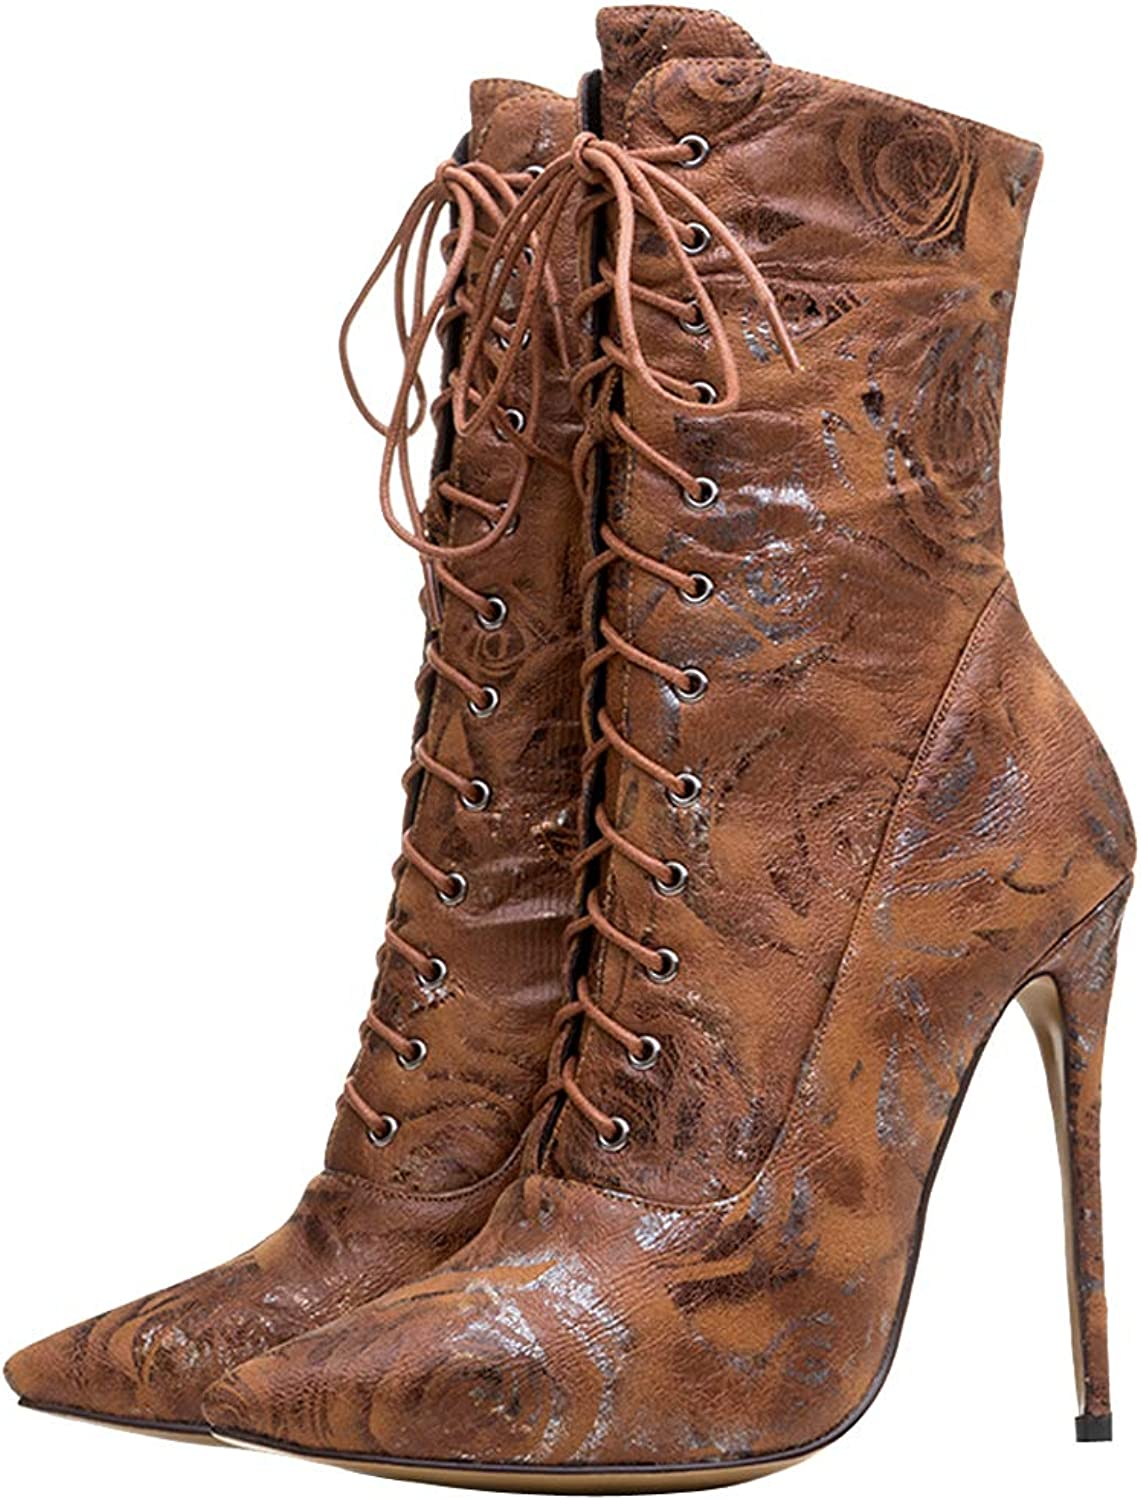 Themost Womens Ankle Boots,Lace Up High Heel Boot Winter Pointed Toe Booties Light Brown